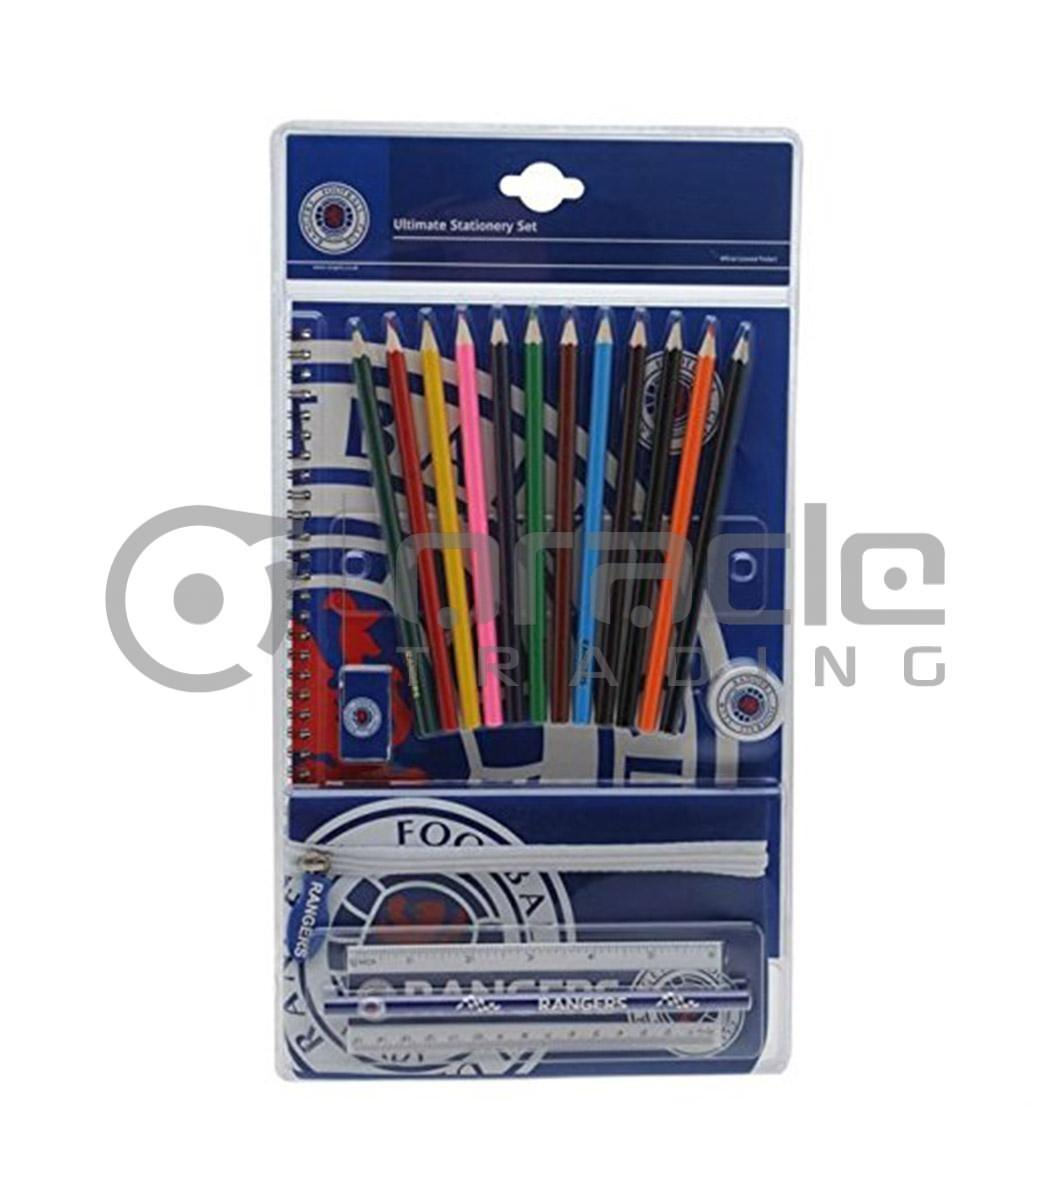 Rangers FC Ultimate Stationery Set